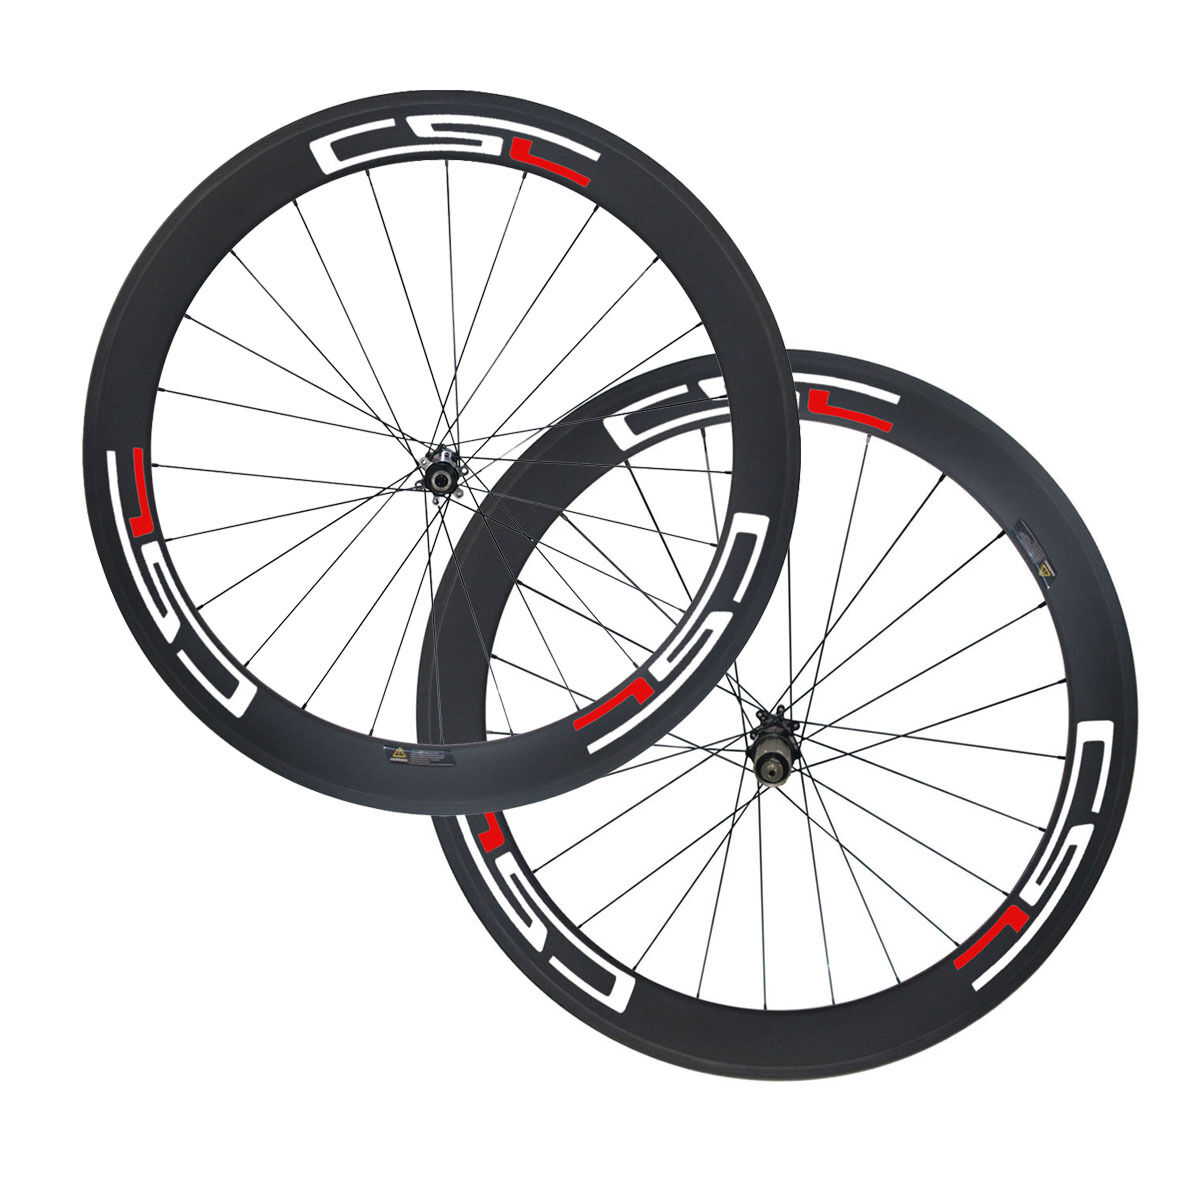 D411SB  D412SB Disc Brake Sapim CX   60mm Carbon Cyclocross Bicycle Wheelset  exciting promotions